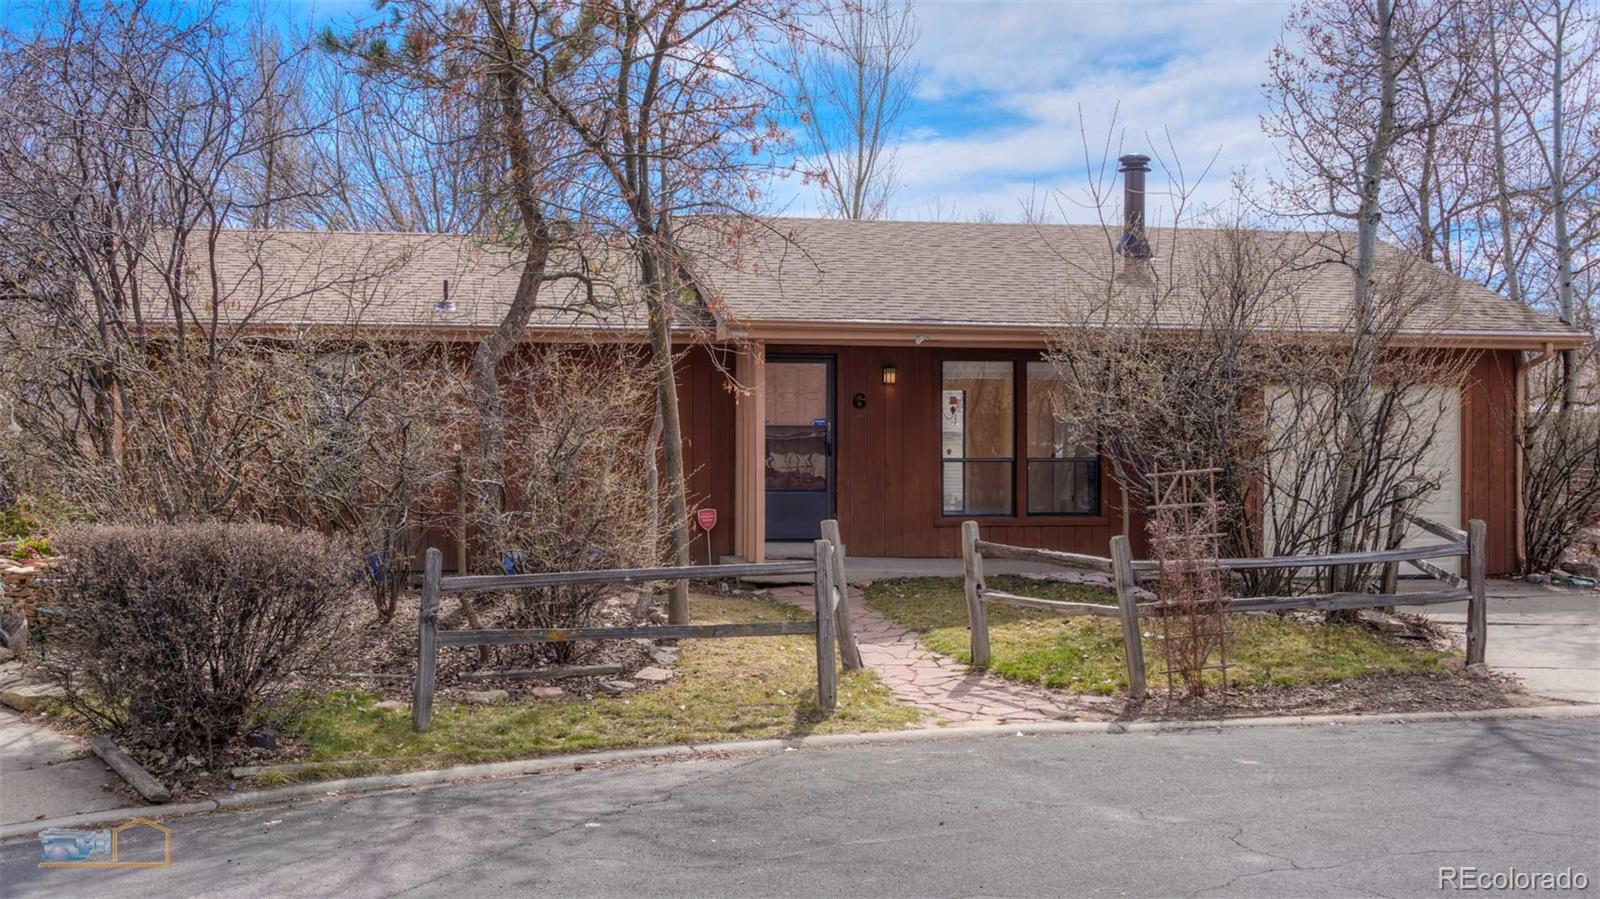 MLS# 4728758 - 2 - 6 Pinon Place, Broomfield, CO 80020